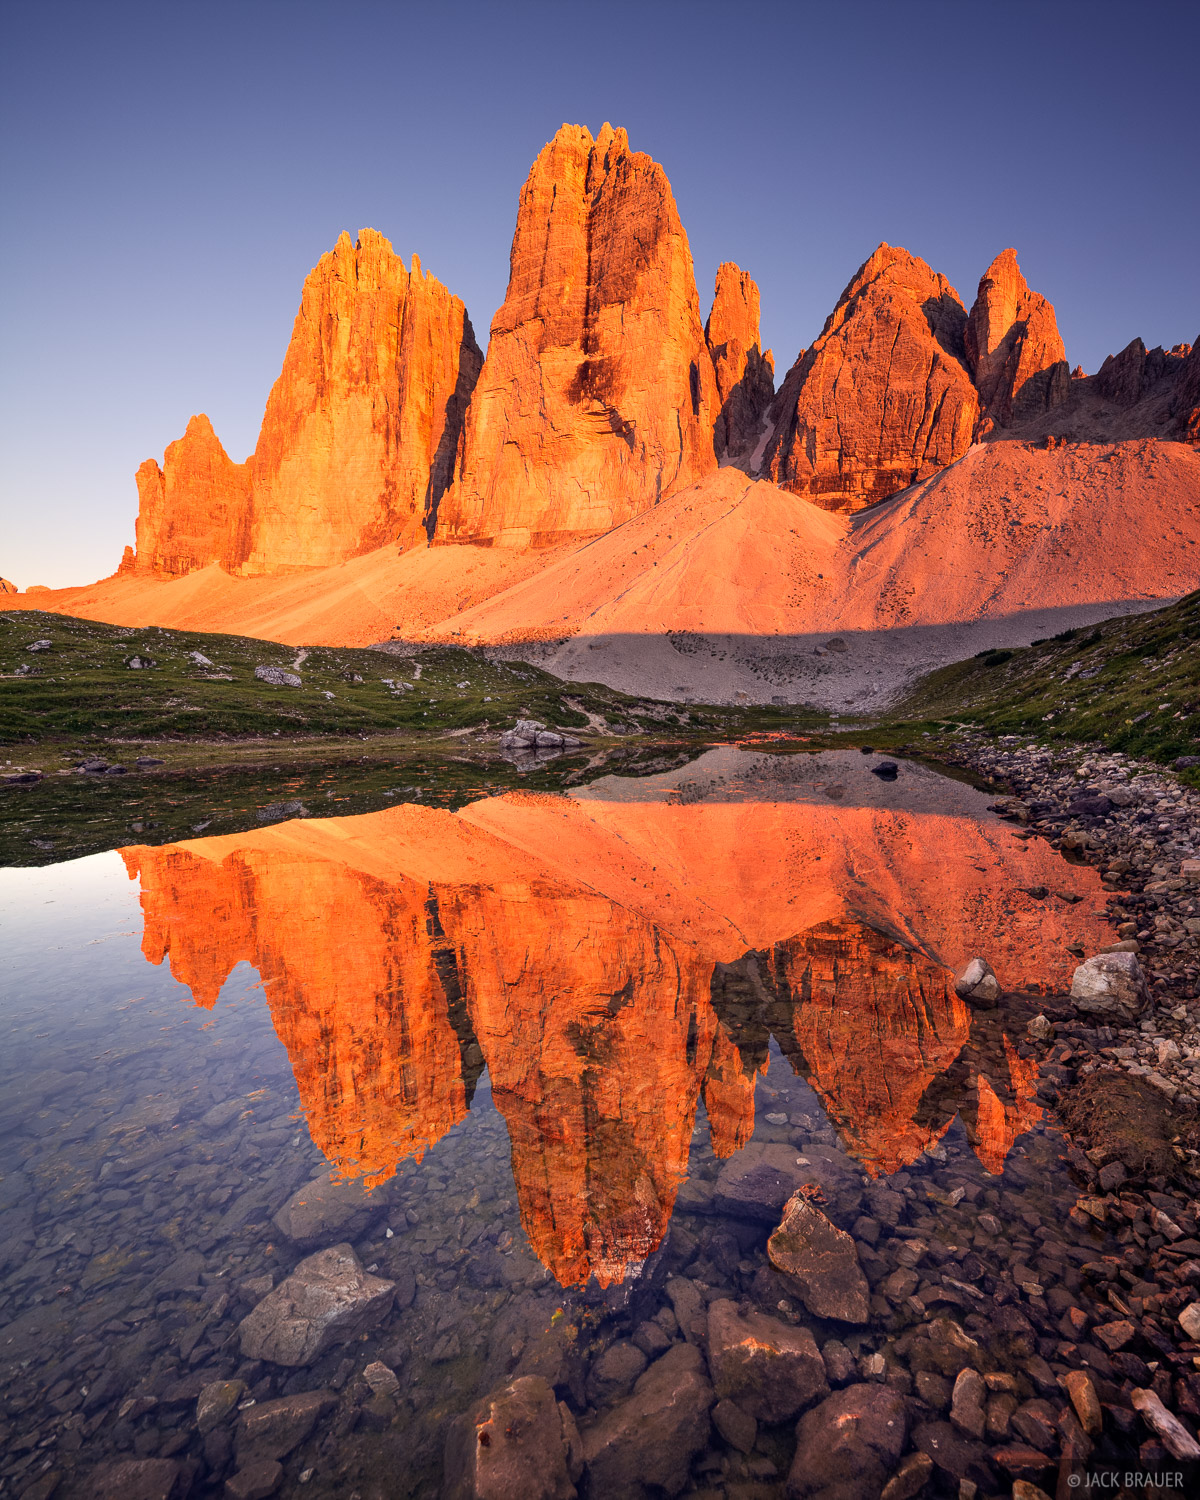 Tre Cime, Lavaredo, Drei Zinnen, enrosadira, Dolomites, Italy, reflection, photo